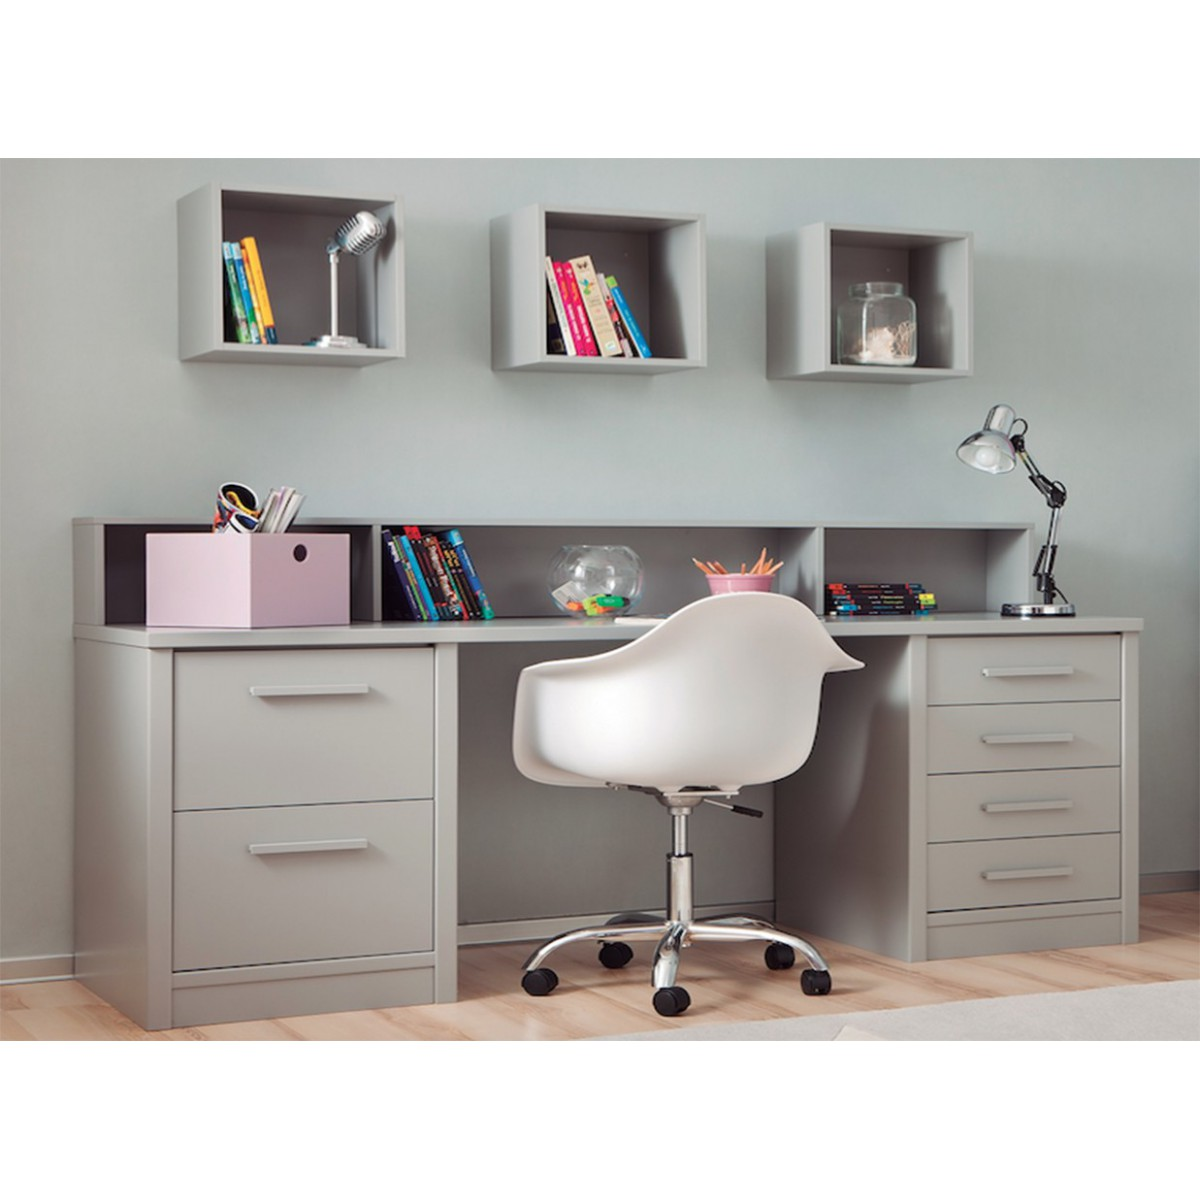 bureau junior moderne et fonctionnel sign asoral. Black Bedroom Furniture Sets. Home Design Ideas